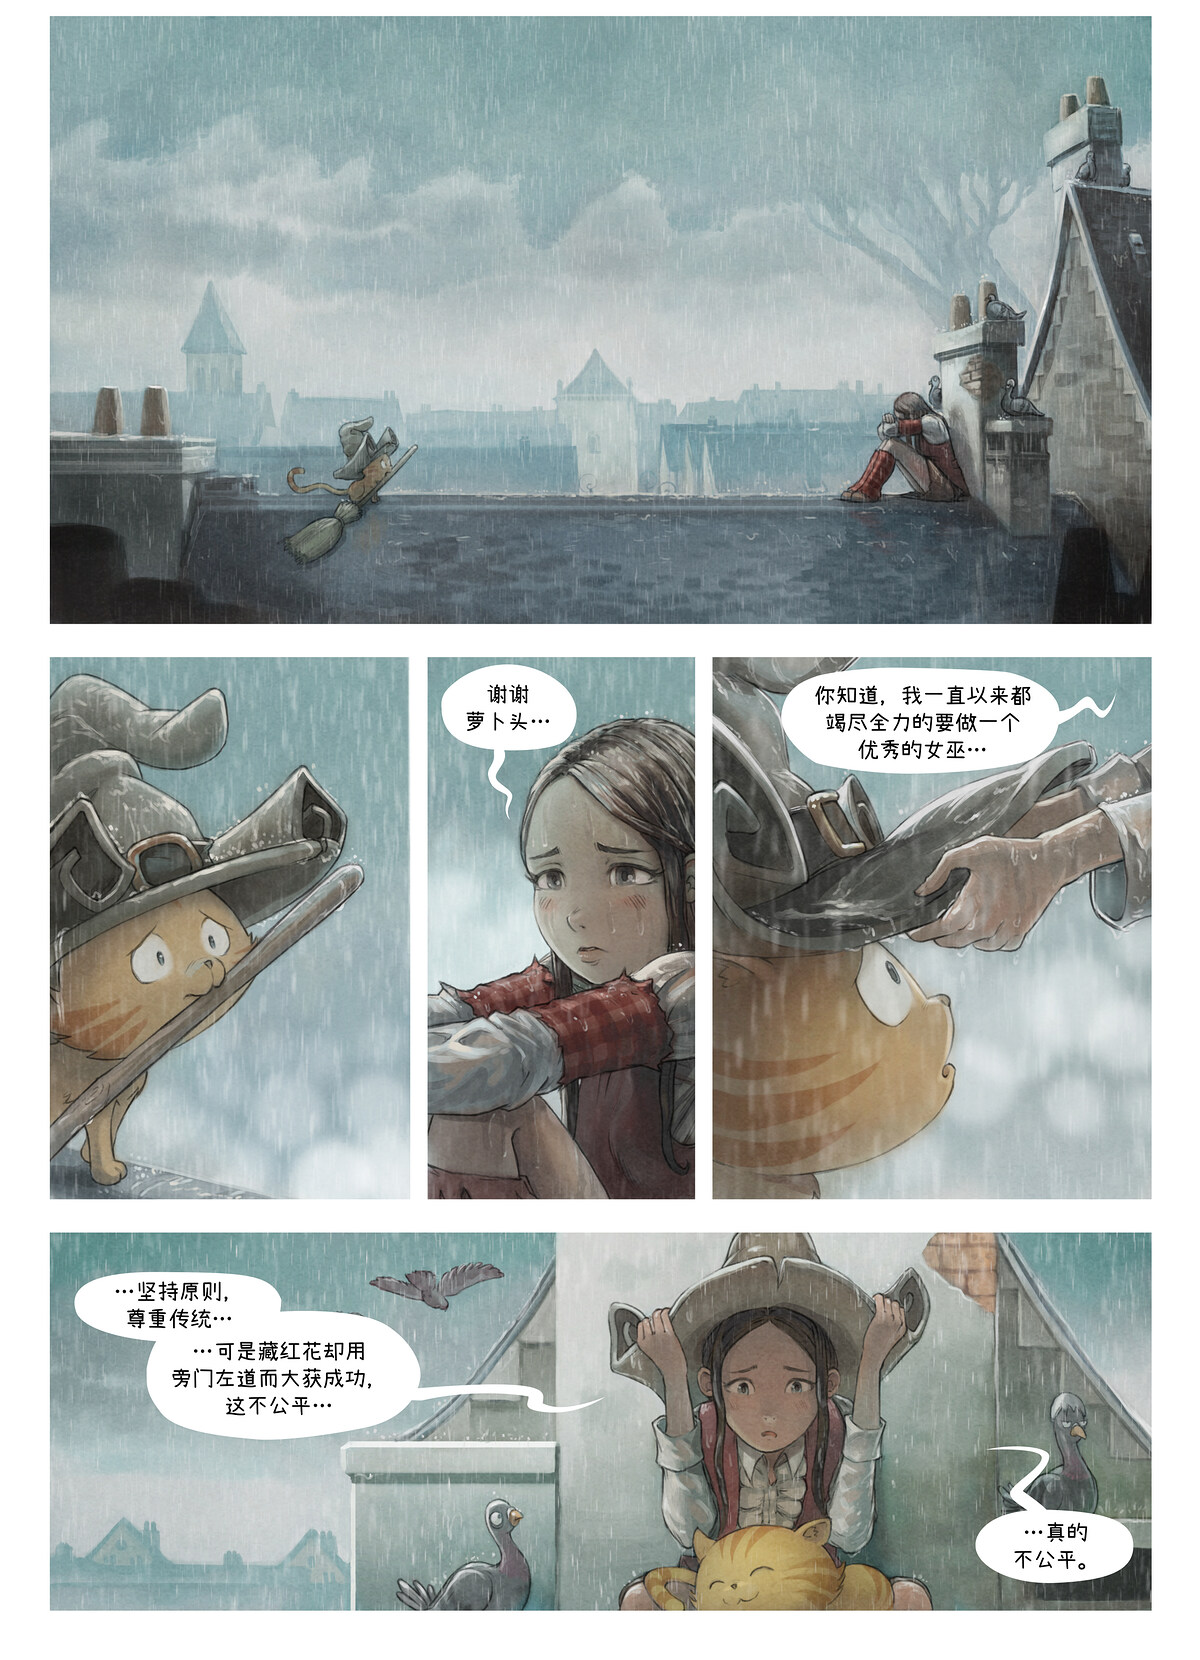 A webcomic page of Pepper&Carrot, 漫画全集 23 [cn], 页面 2